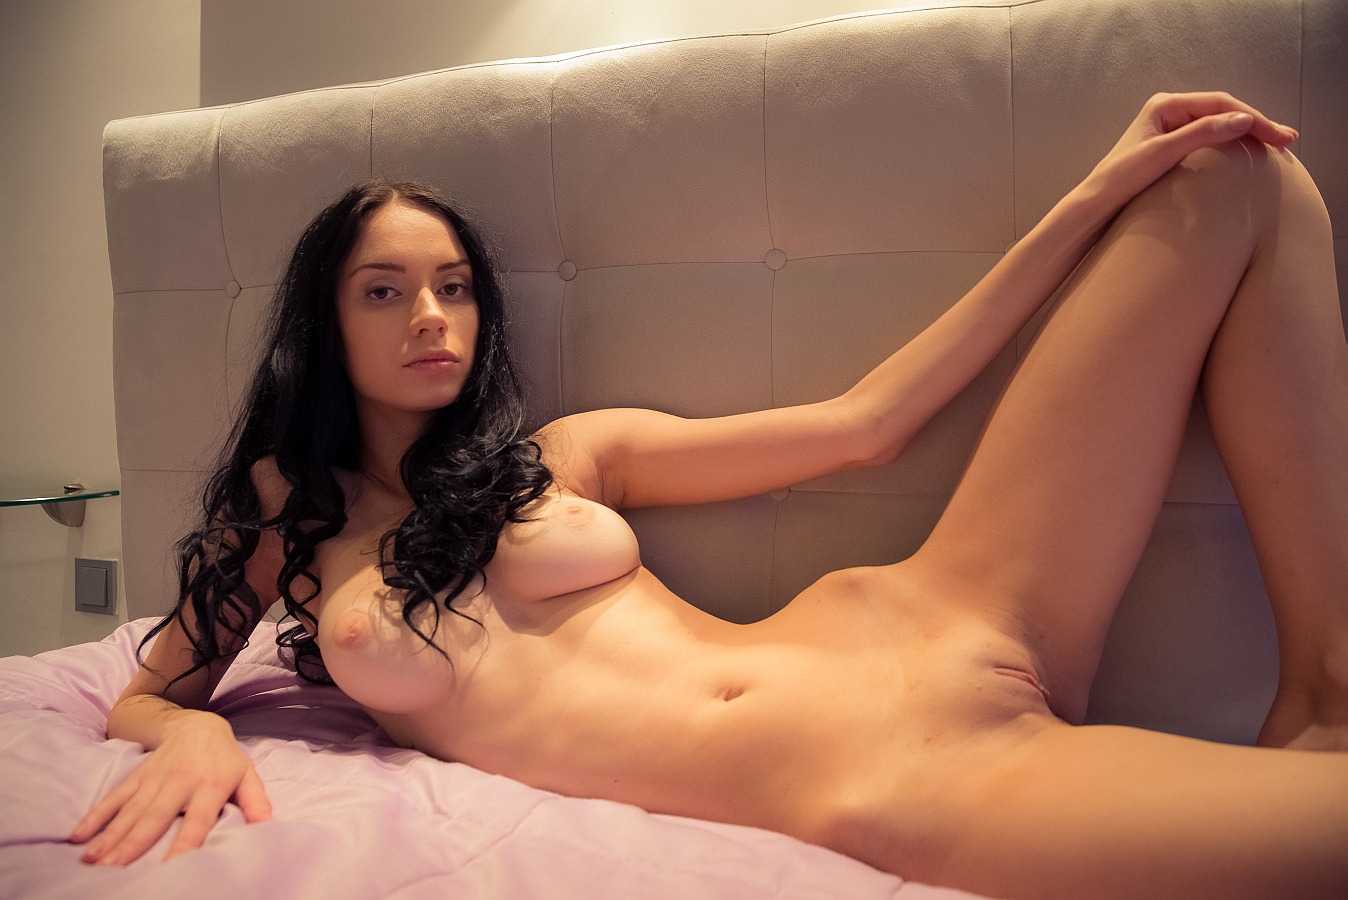 swedish beauty free porn tube watch download and cum